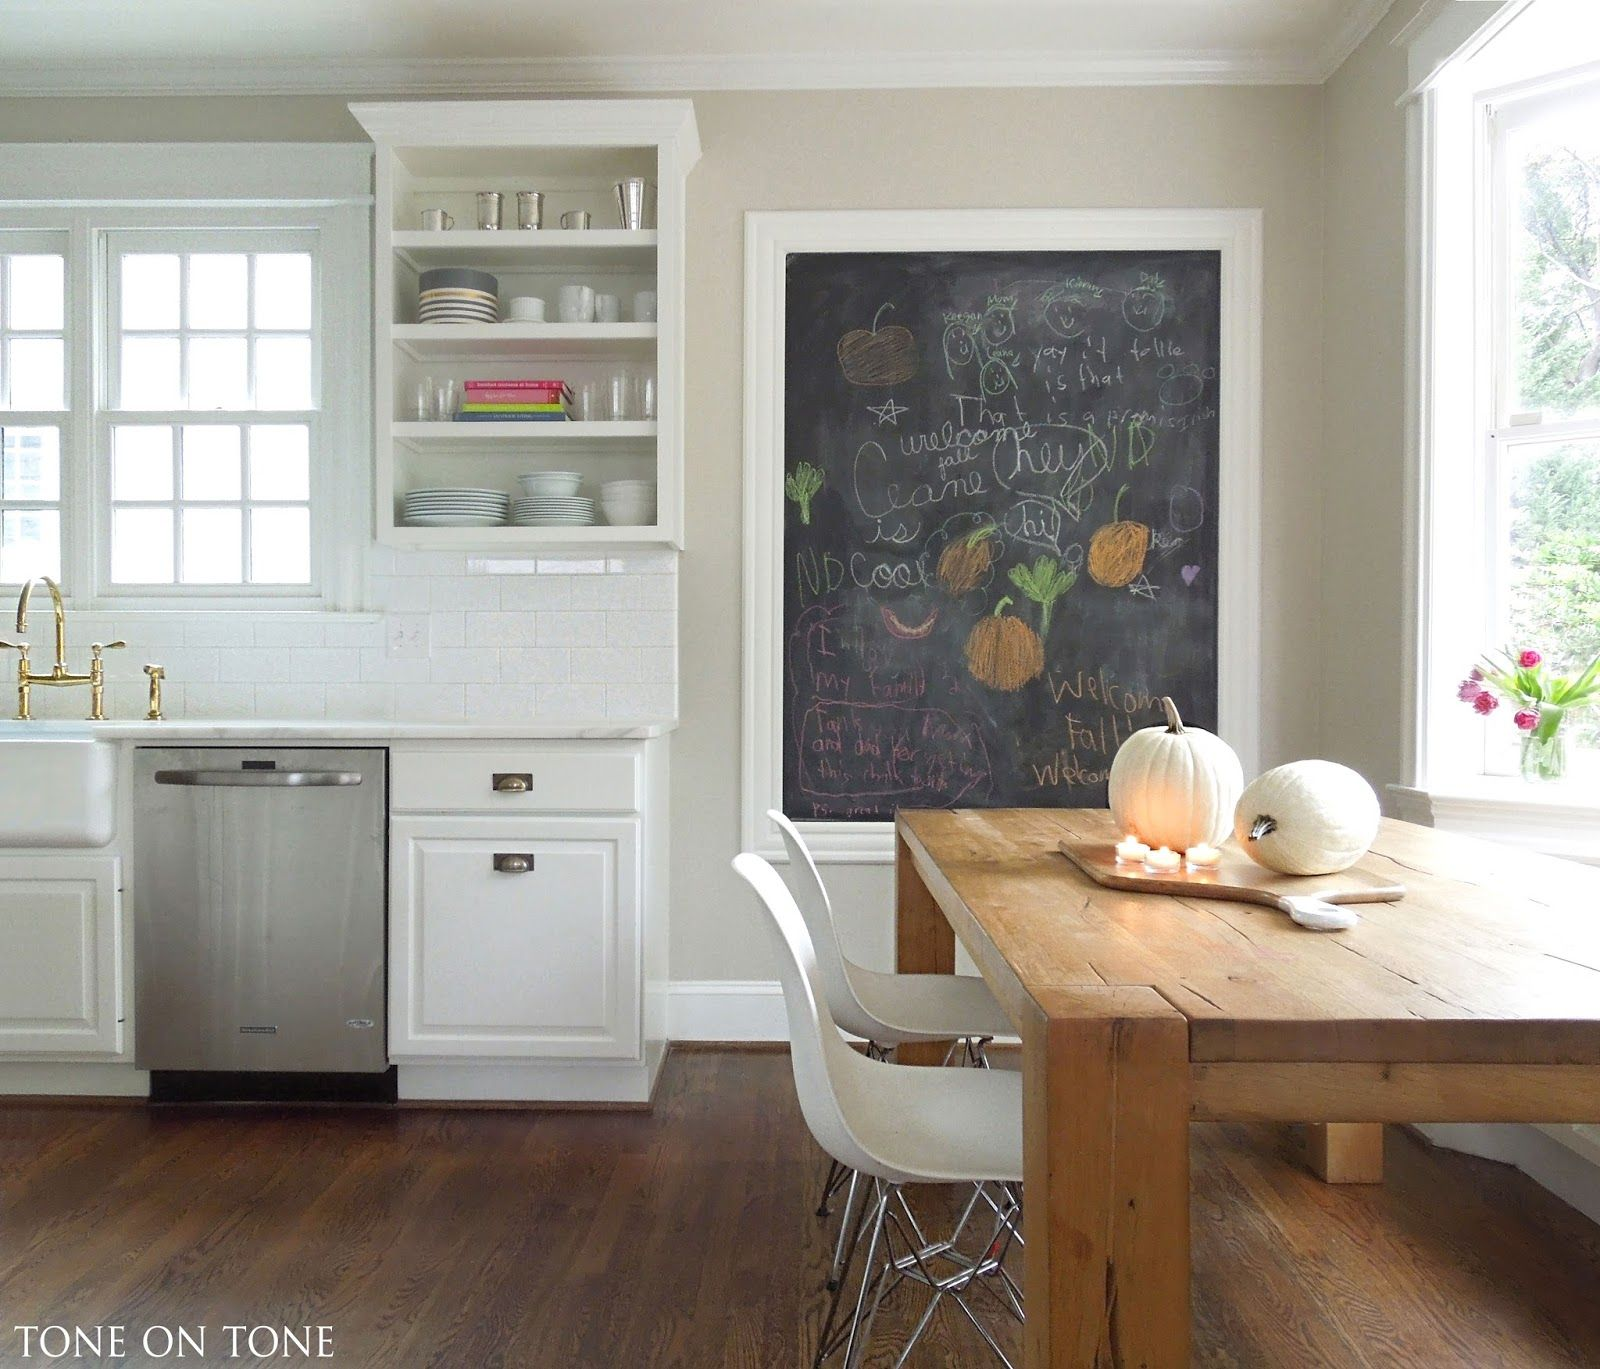 What Color To Paint Kitchen Walls: Cabinets Painted BM Simply White. Wall Behind Island Is